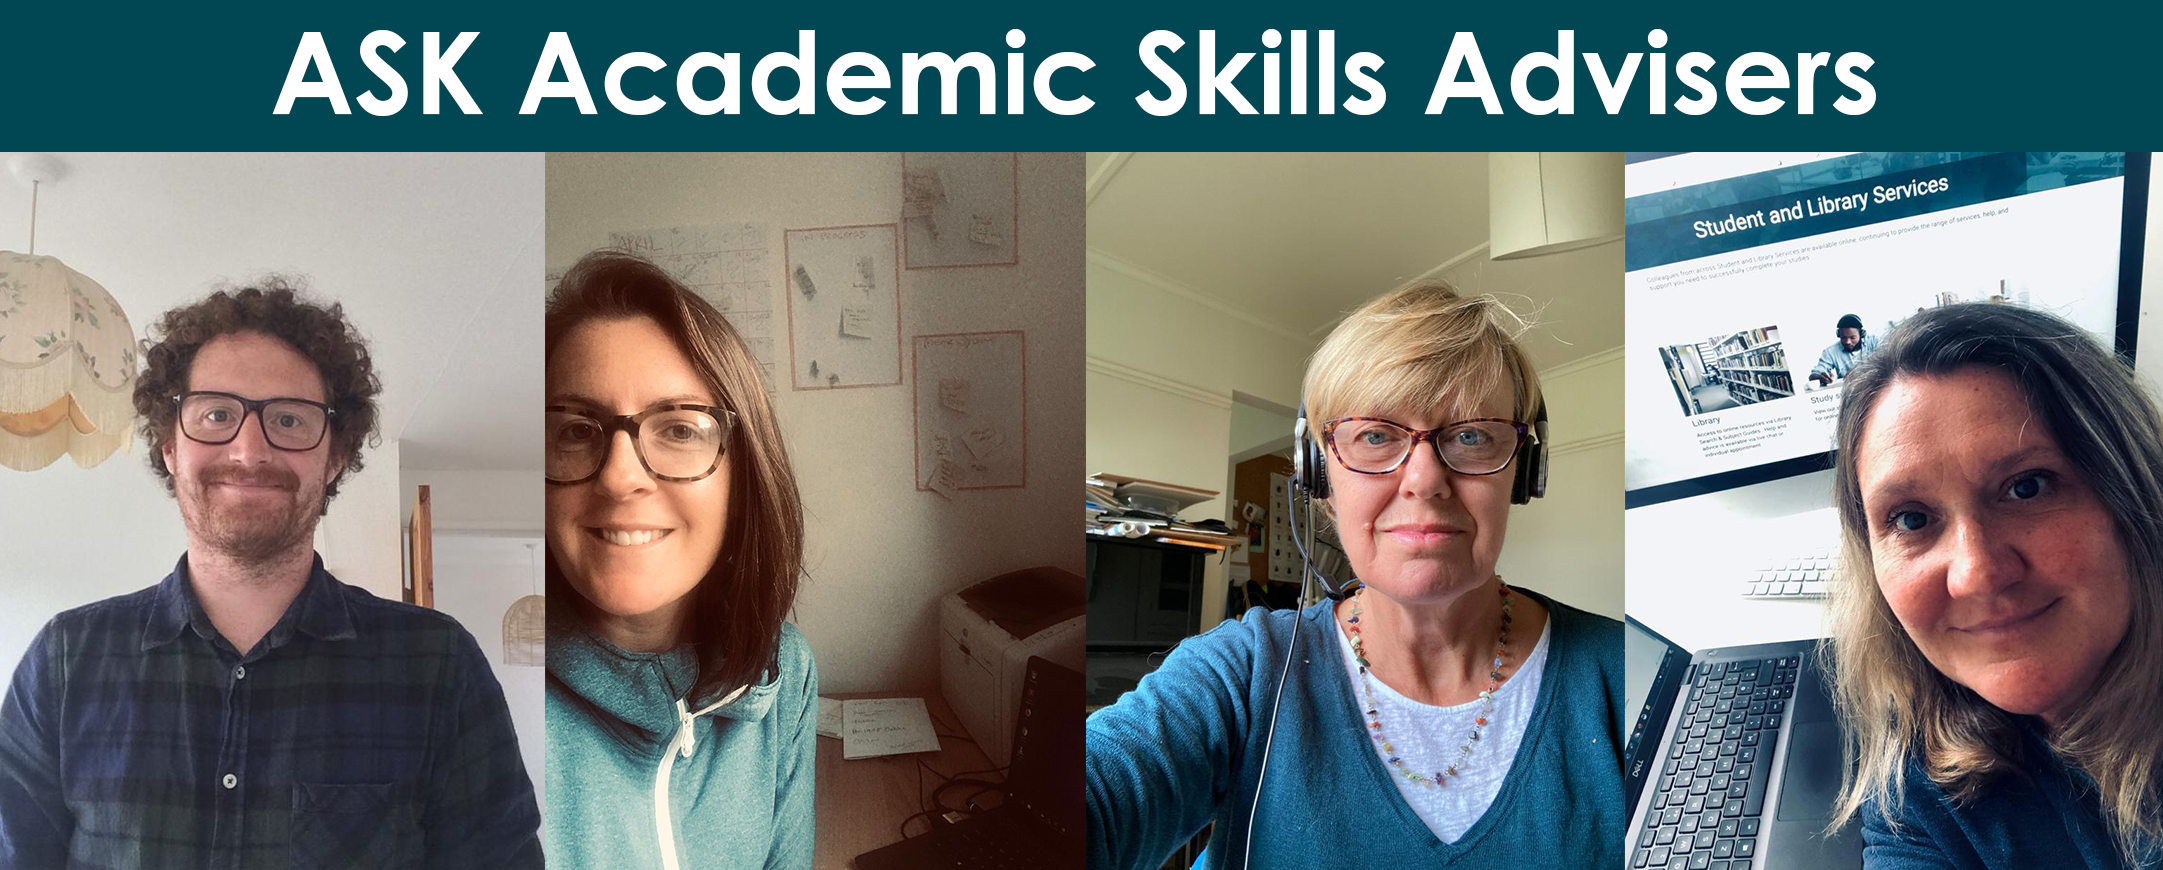 Academic skills advisors